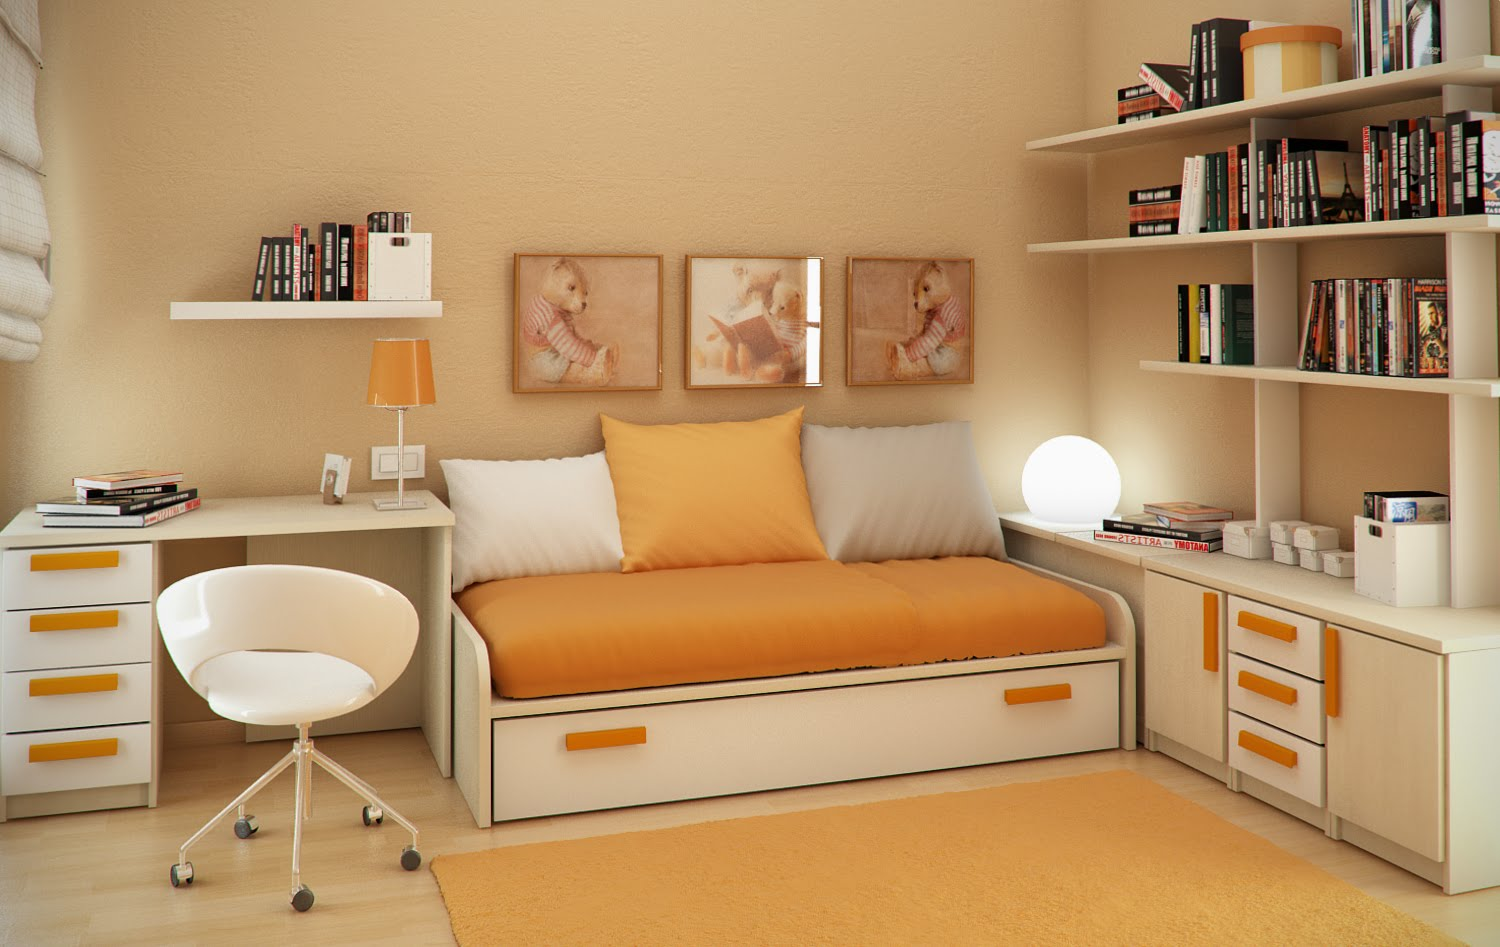 Excellent Small Bedroom Interior Design Ideas 1500 x 947 · 159 kB · jpeg